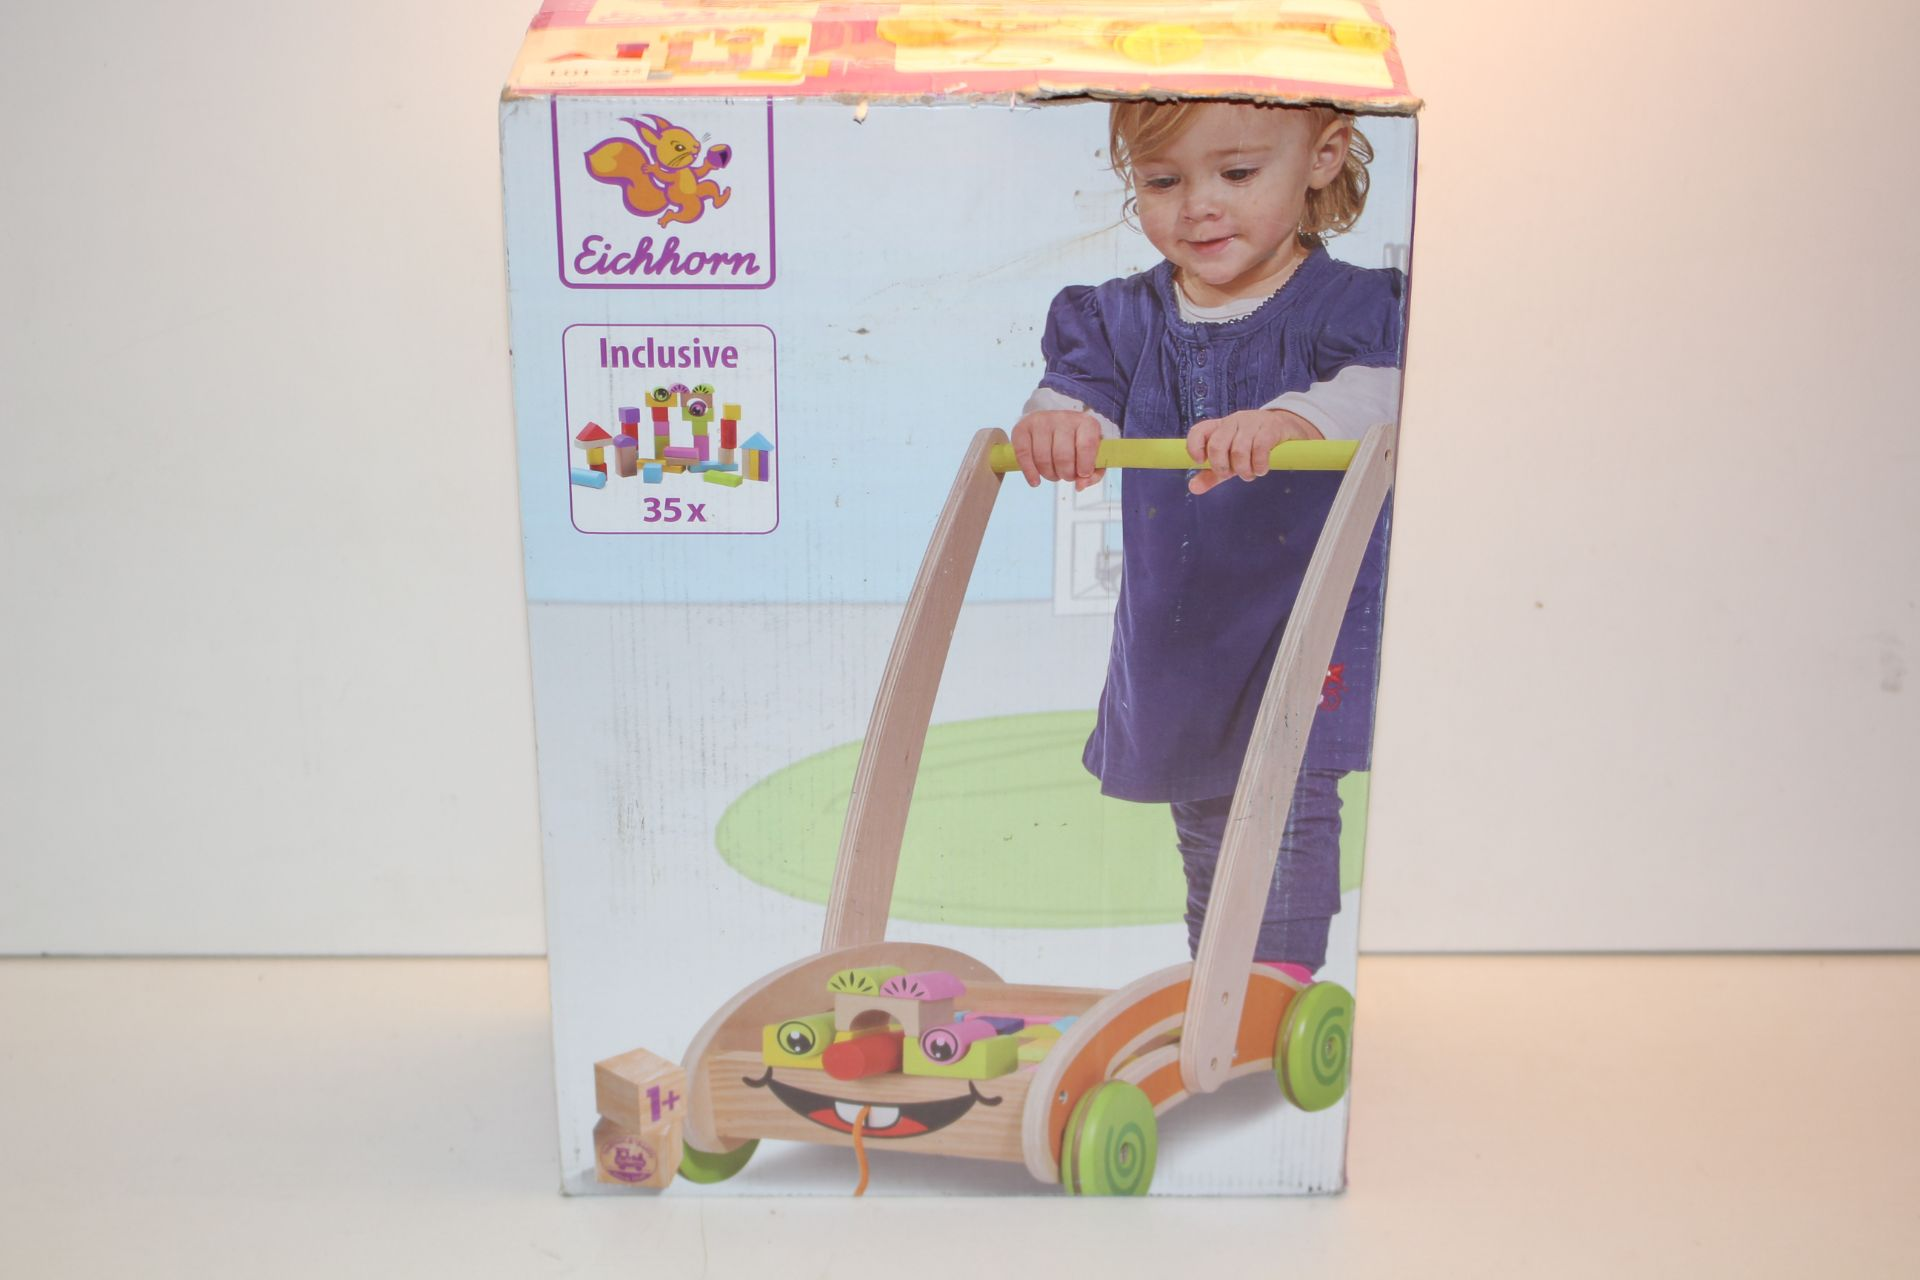 BOXED EICHORN PUSH ALONG WOODEN BUILDING TROLLEY (IMAGE DEPICTS STOCK)Condition ReportAppraisal